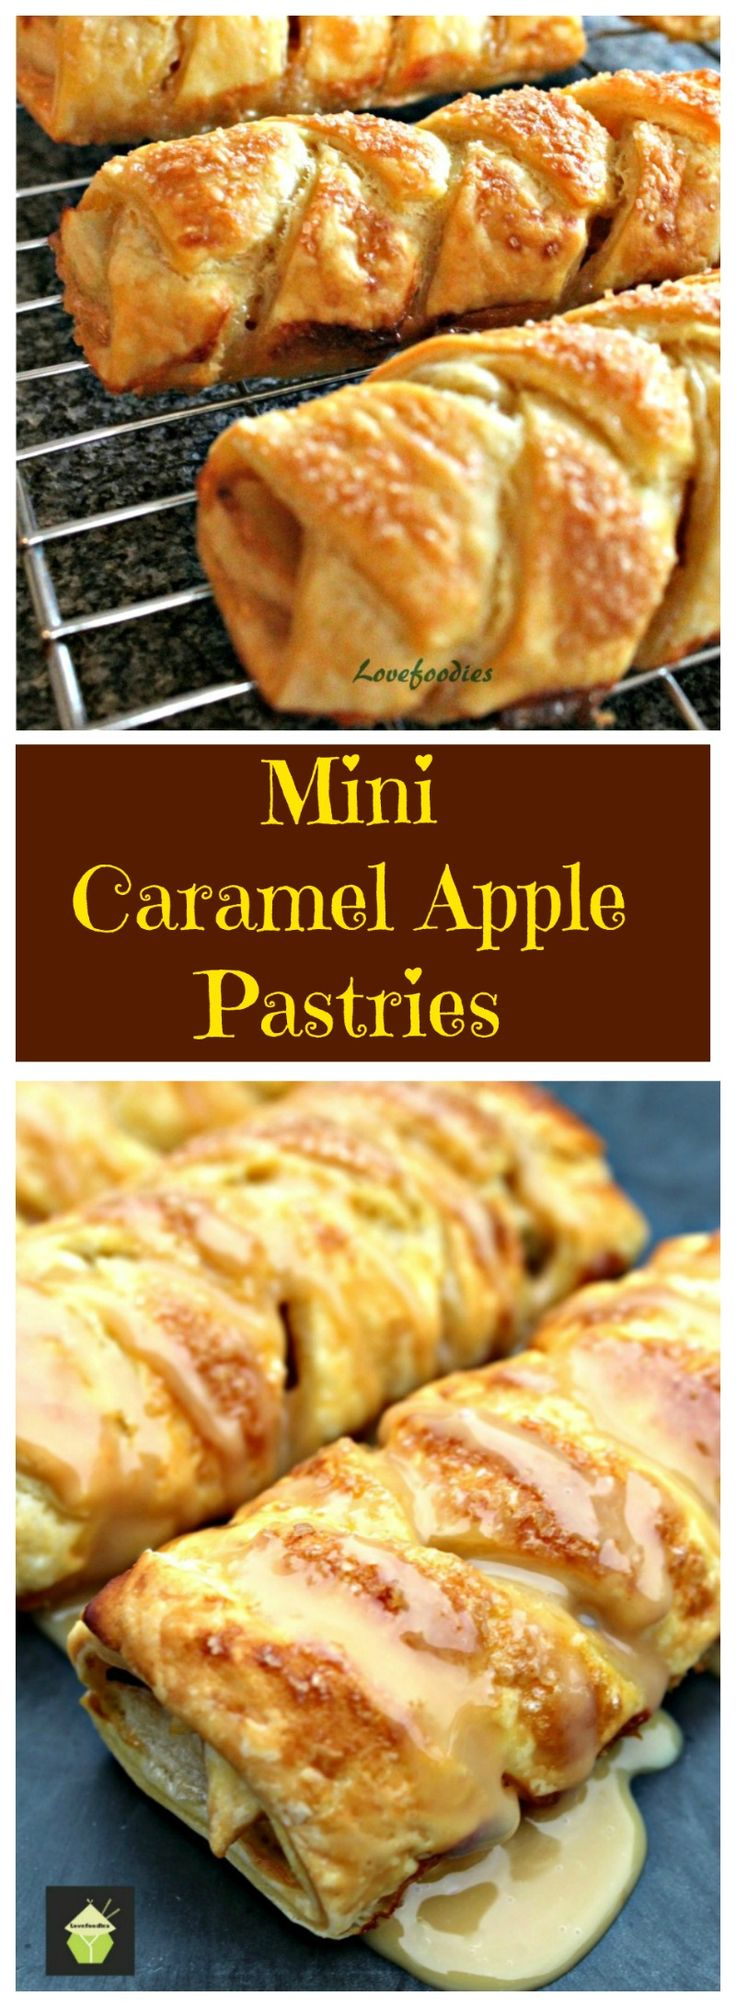 Mini Caramel Apple Pastries. Delightful mini pastries filled with caramel and apples and oh so easy to make! Freeze before or after baking, both options work well!